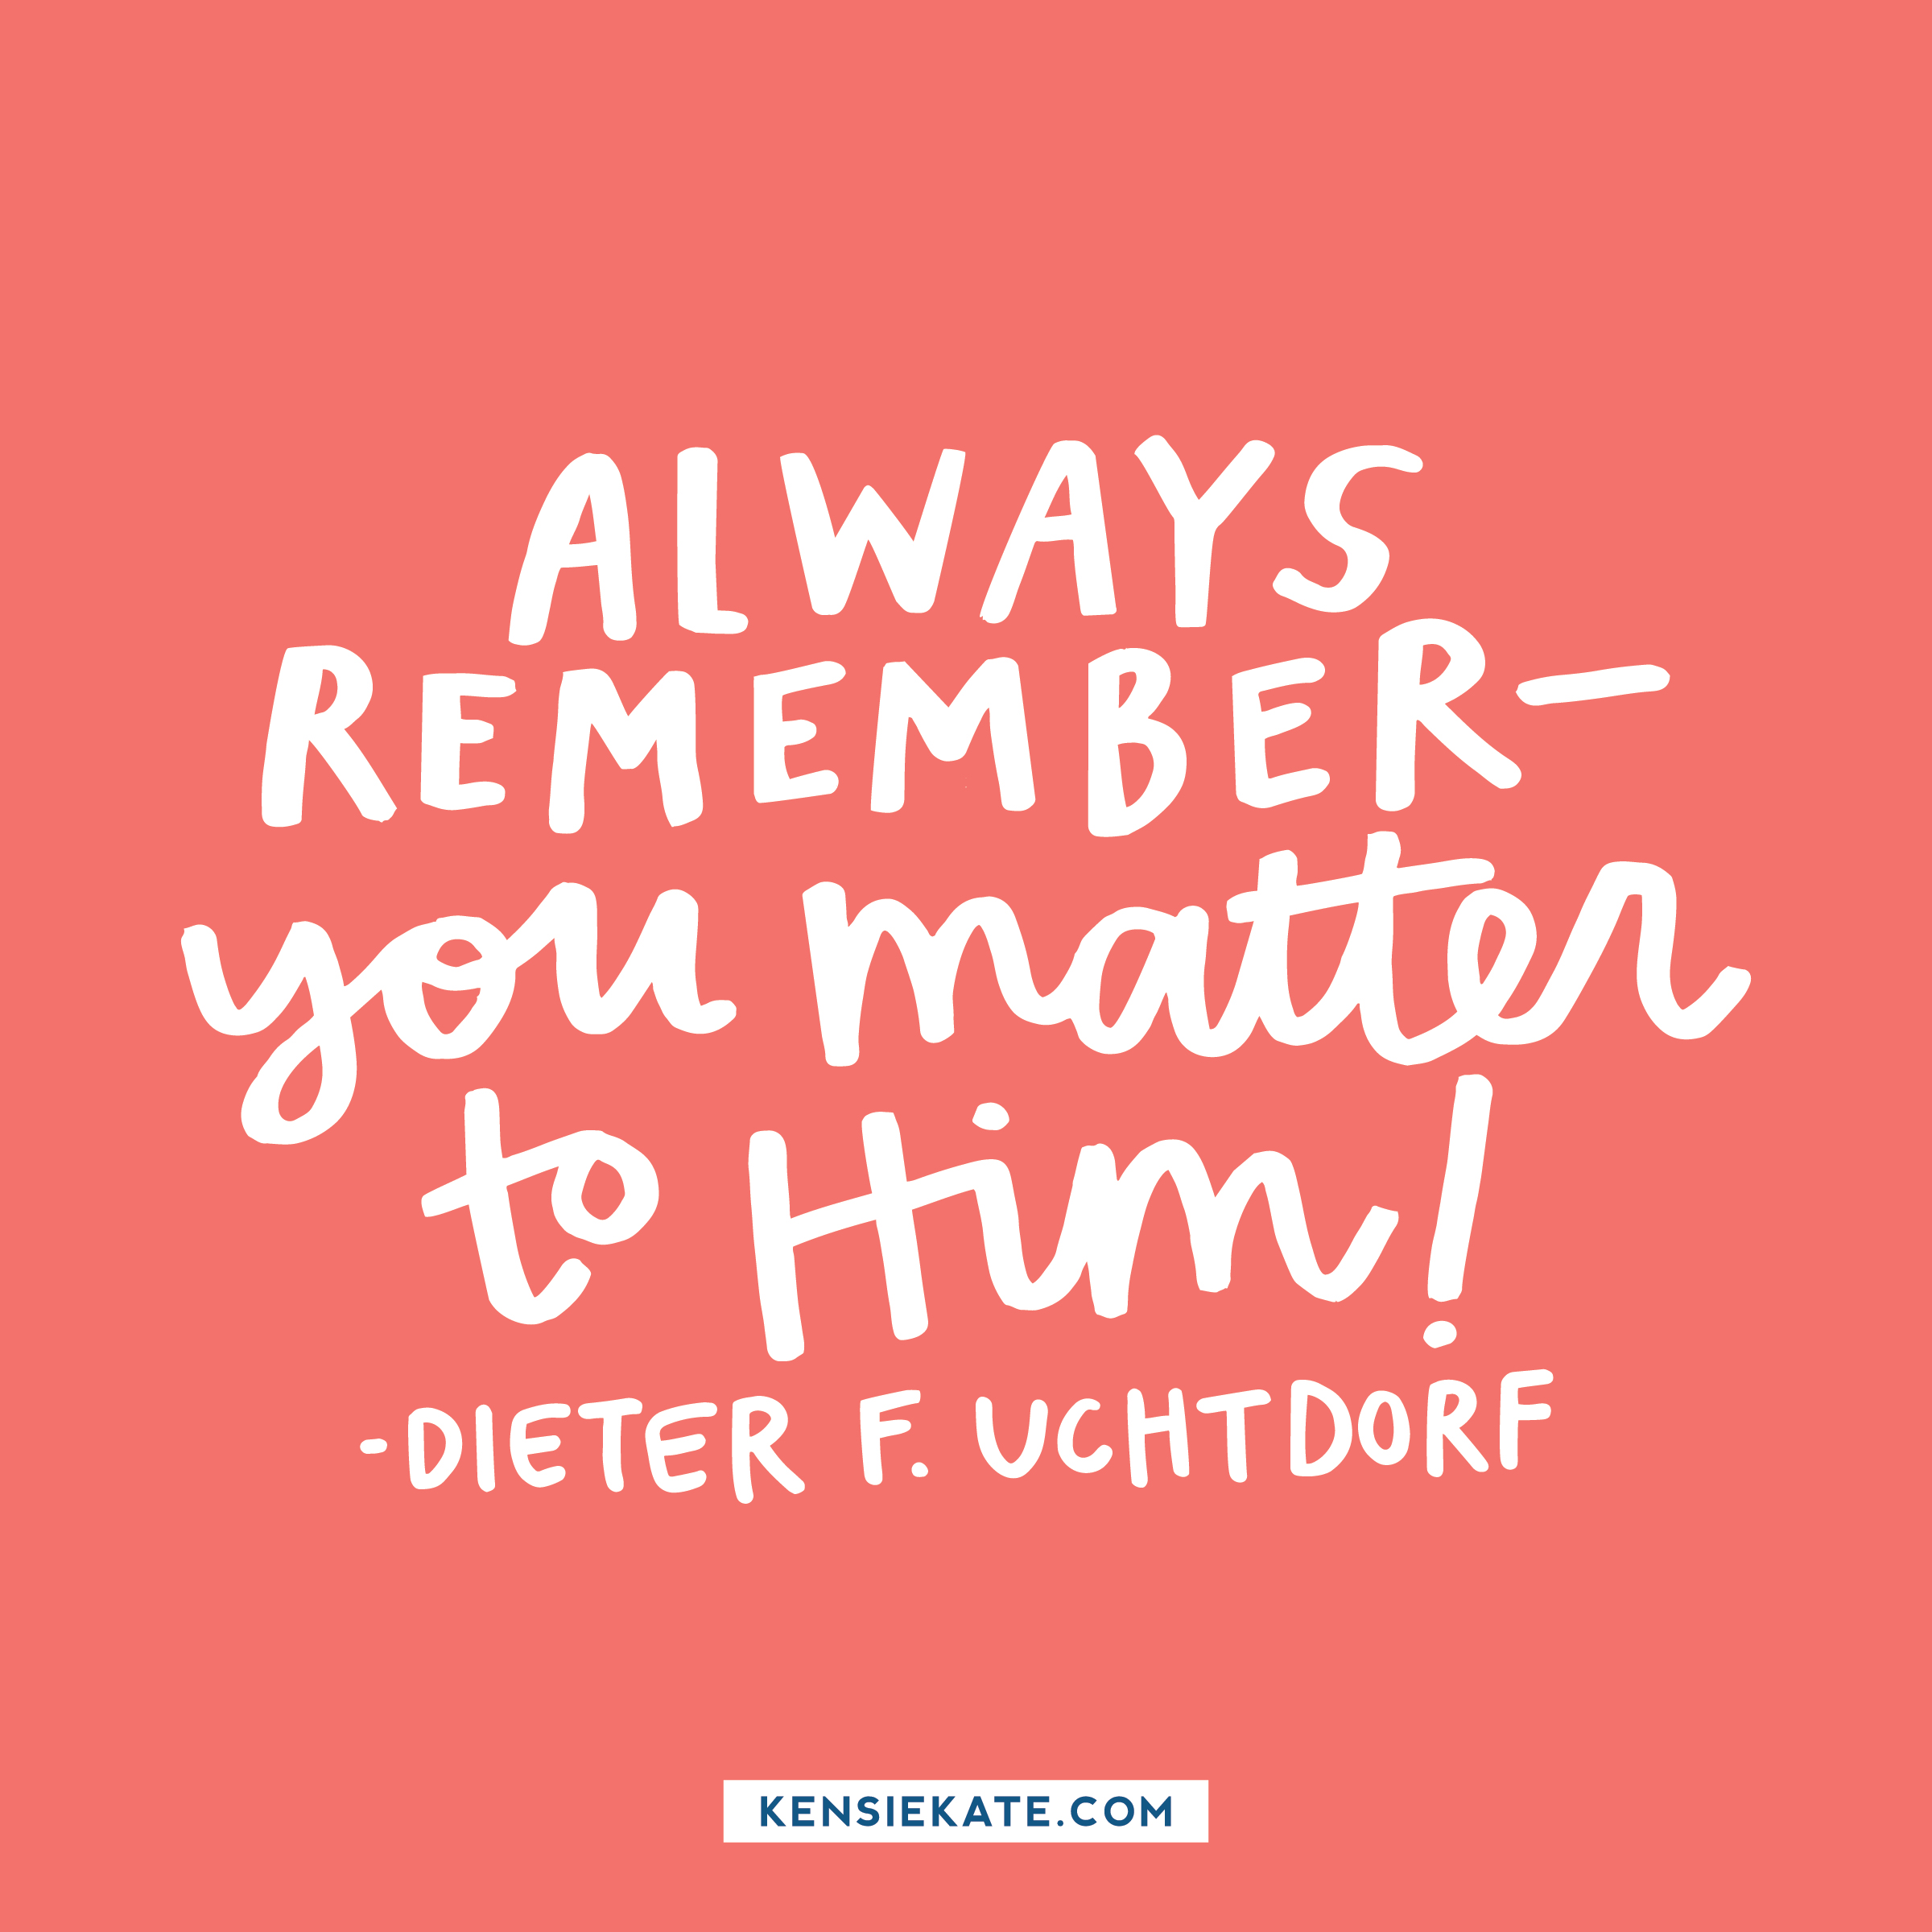 You matter to Him!